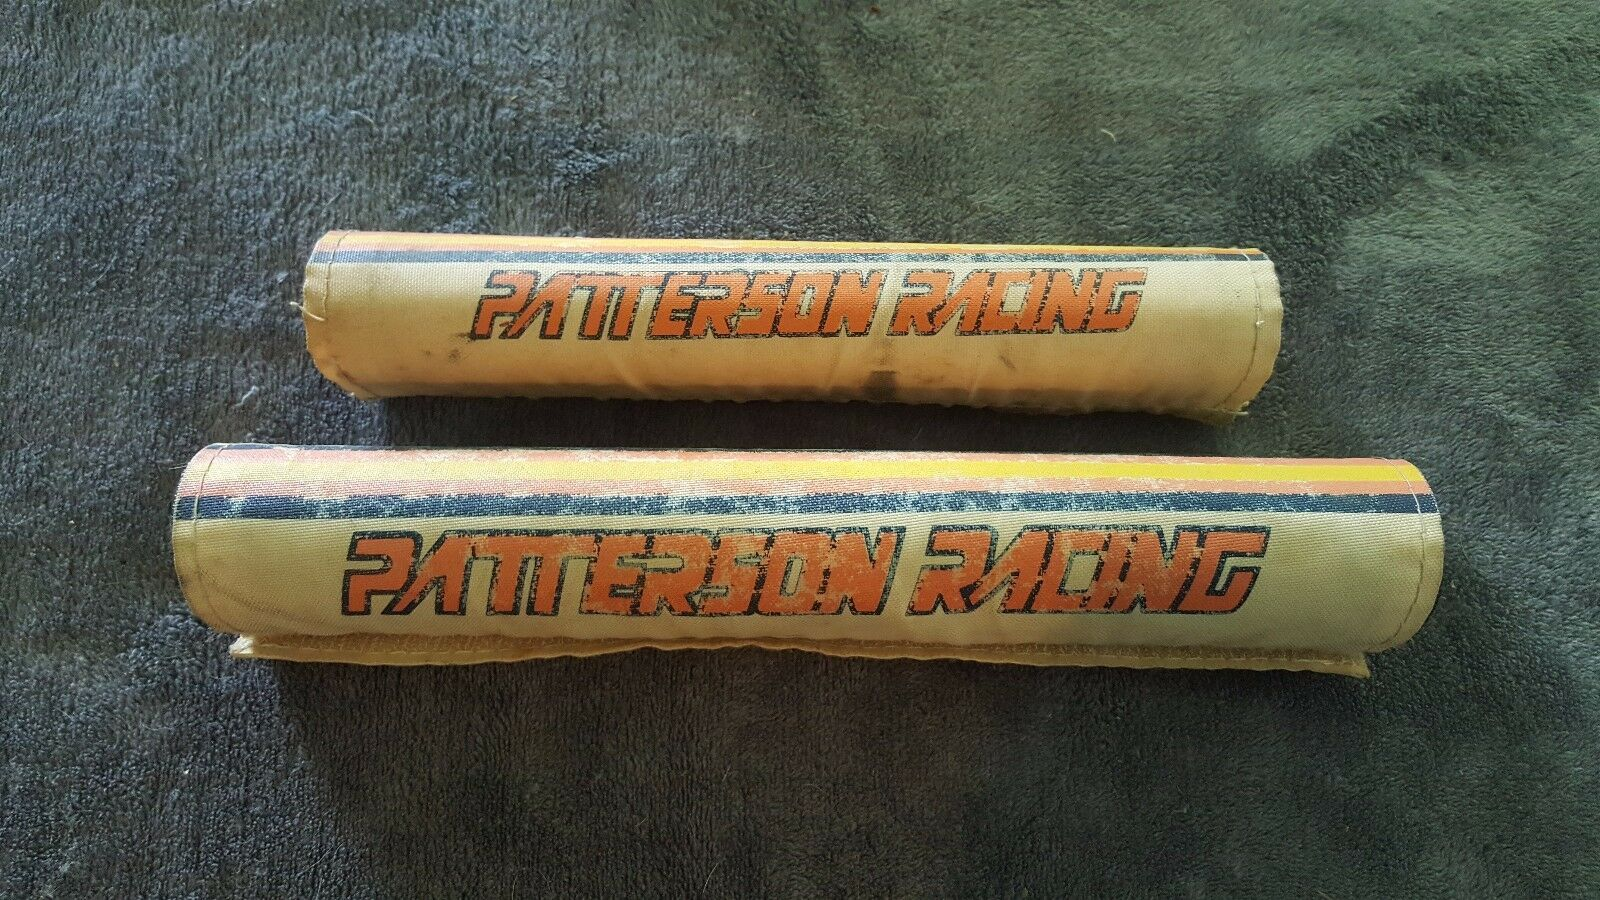 OLD SCHOOL BMX 1983 PATTERSON RACING  FRAME AND CROSS BAR PADS VINTAGE RARE